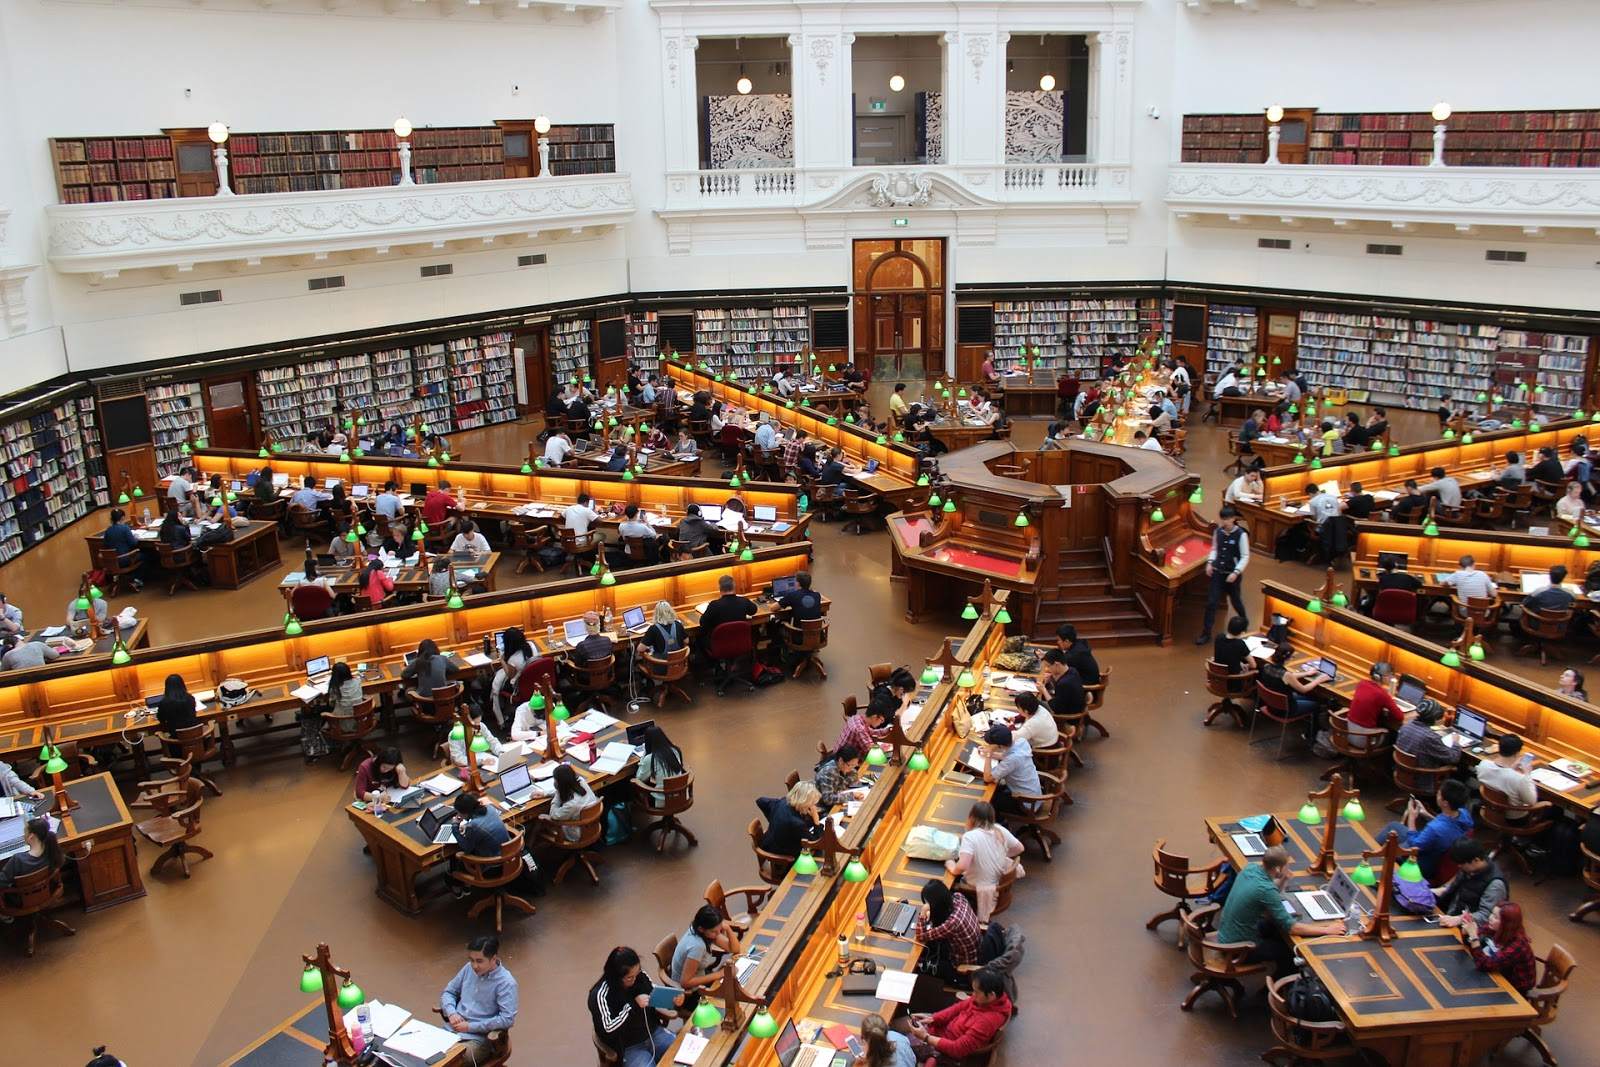 Wide view of an enormous library filled with people